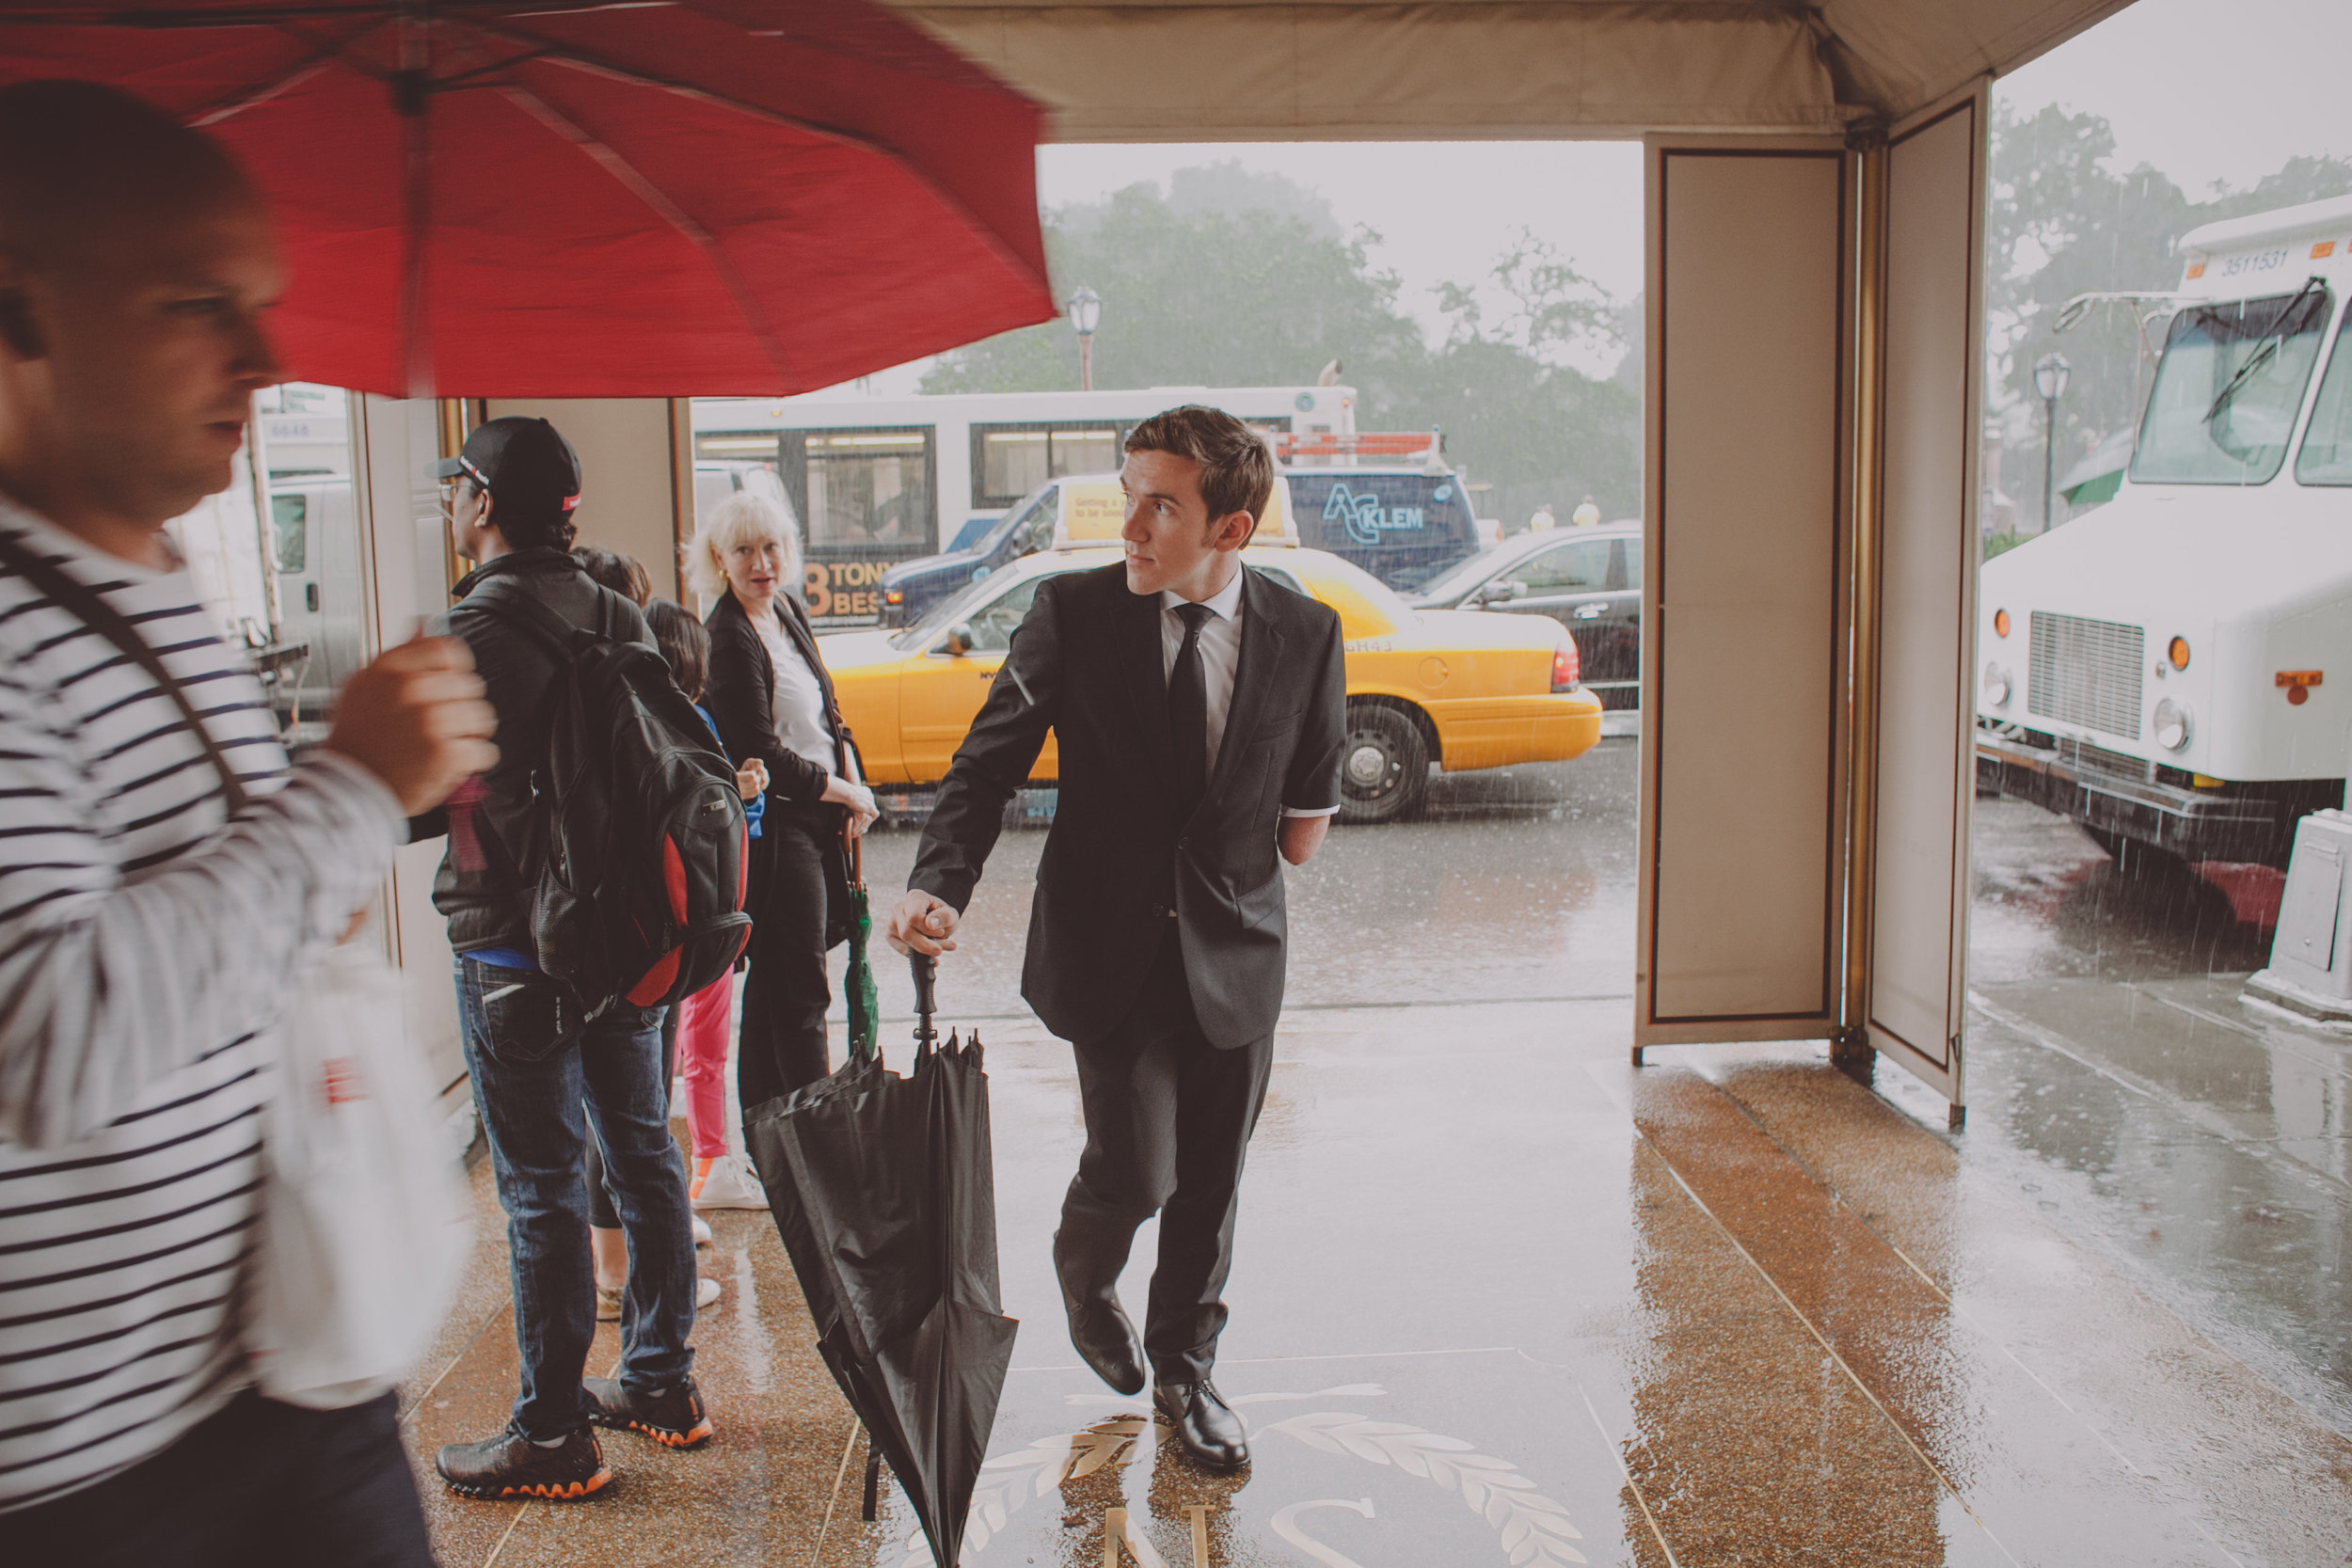 Central_Park_Rainy_Wedding_NYC_E422lopement.JPG